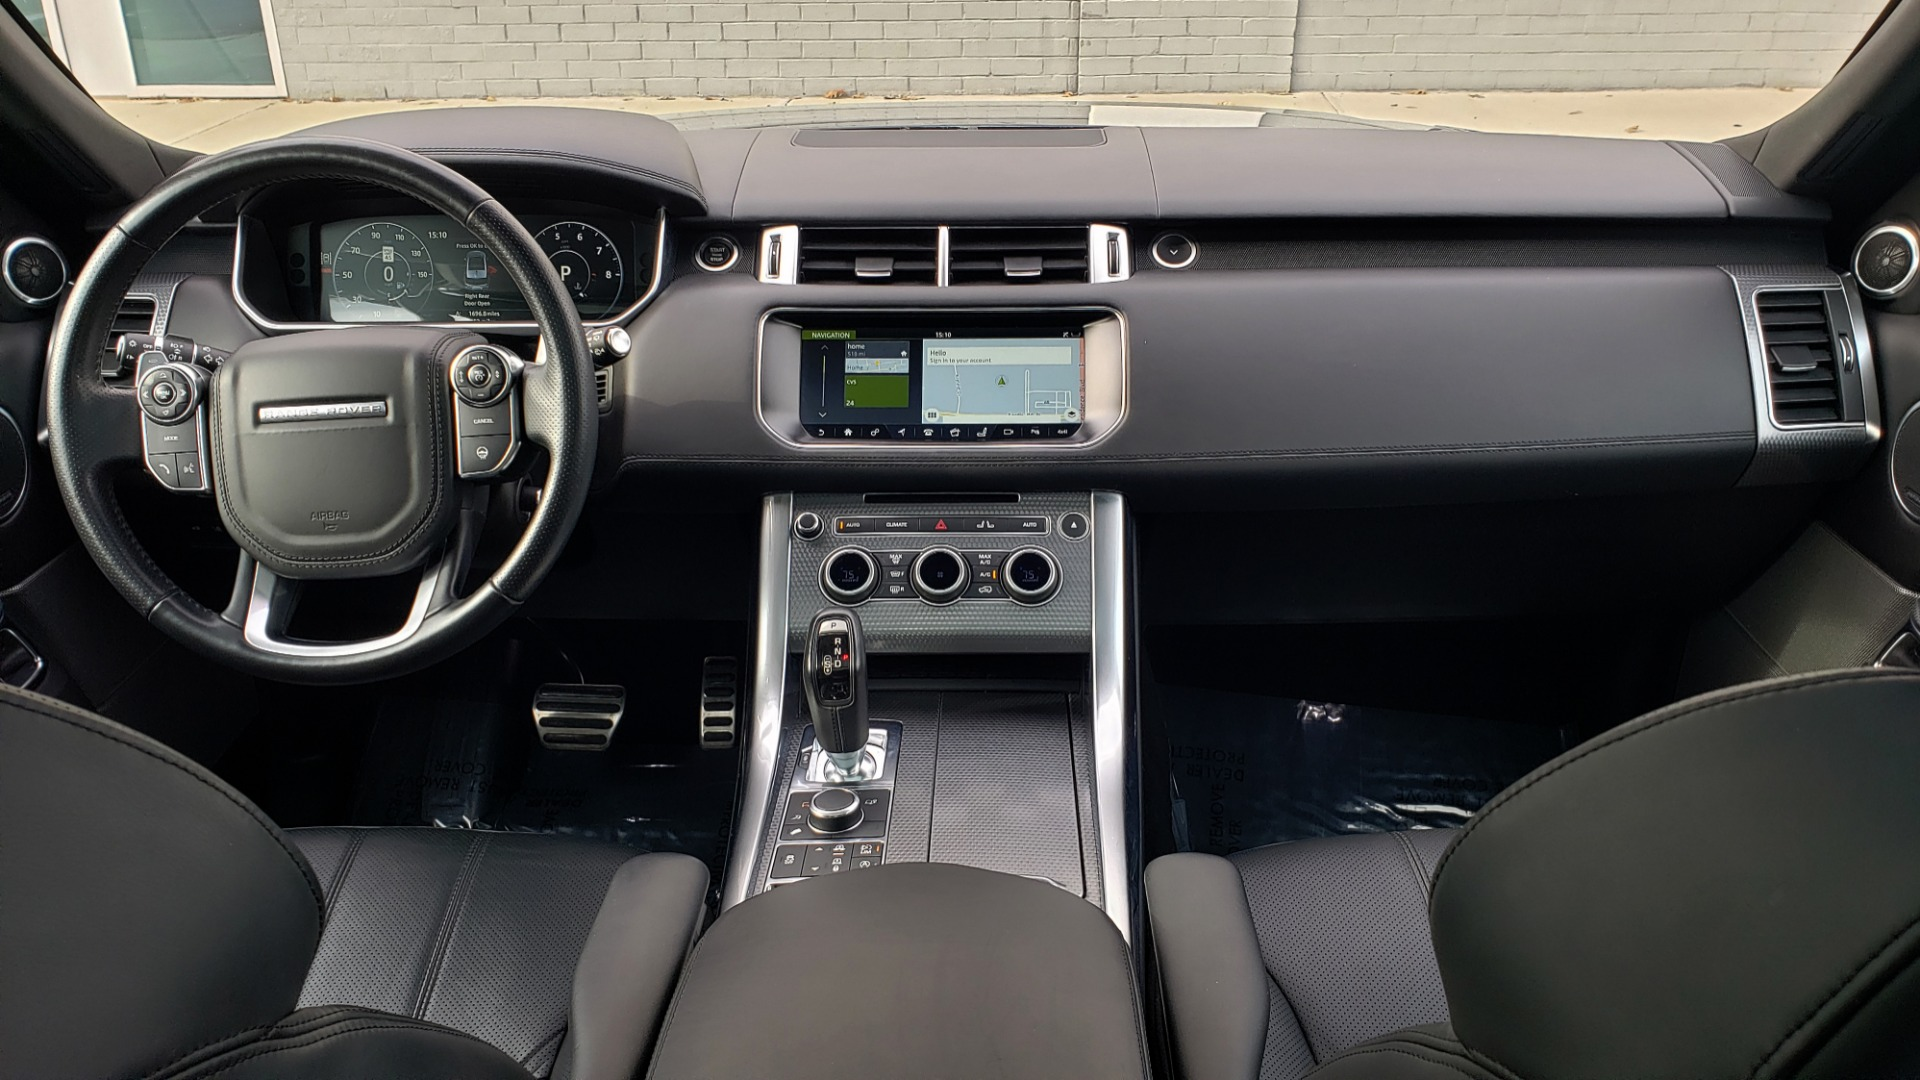 Used 2017 Land Rover RANGE ROVER SPORT HSE DYNAMIC / SC V6 / NAV / MERIDIAN / PANO-ROOF / REARVIEW for sale Sold at Formula Imports in Charlotte NC 28227 180